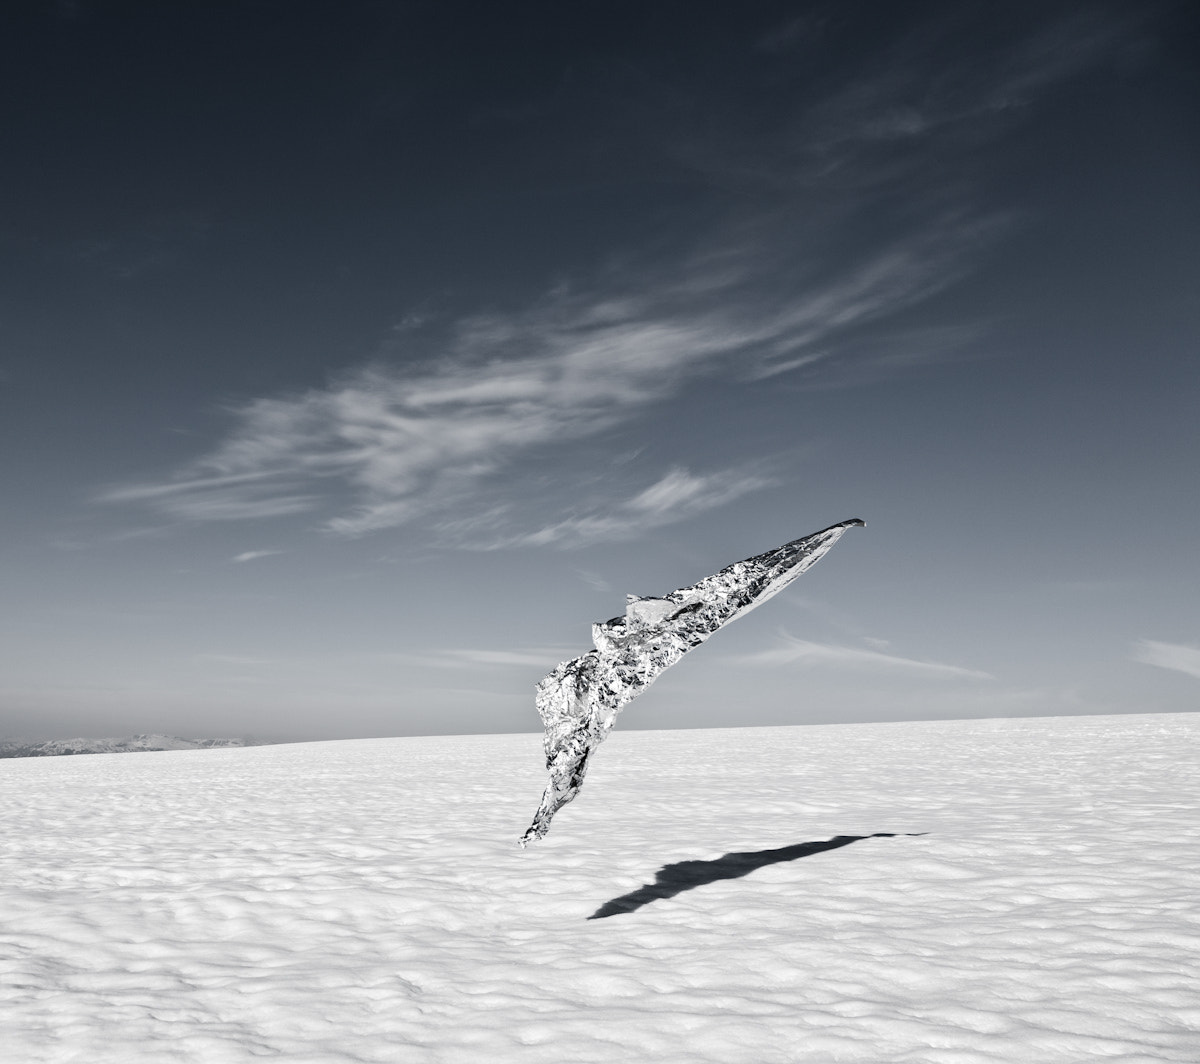 Photograph The silver bird by audun nygaard on 500px